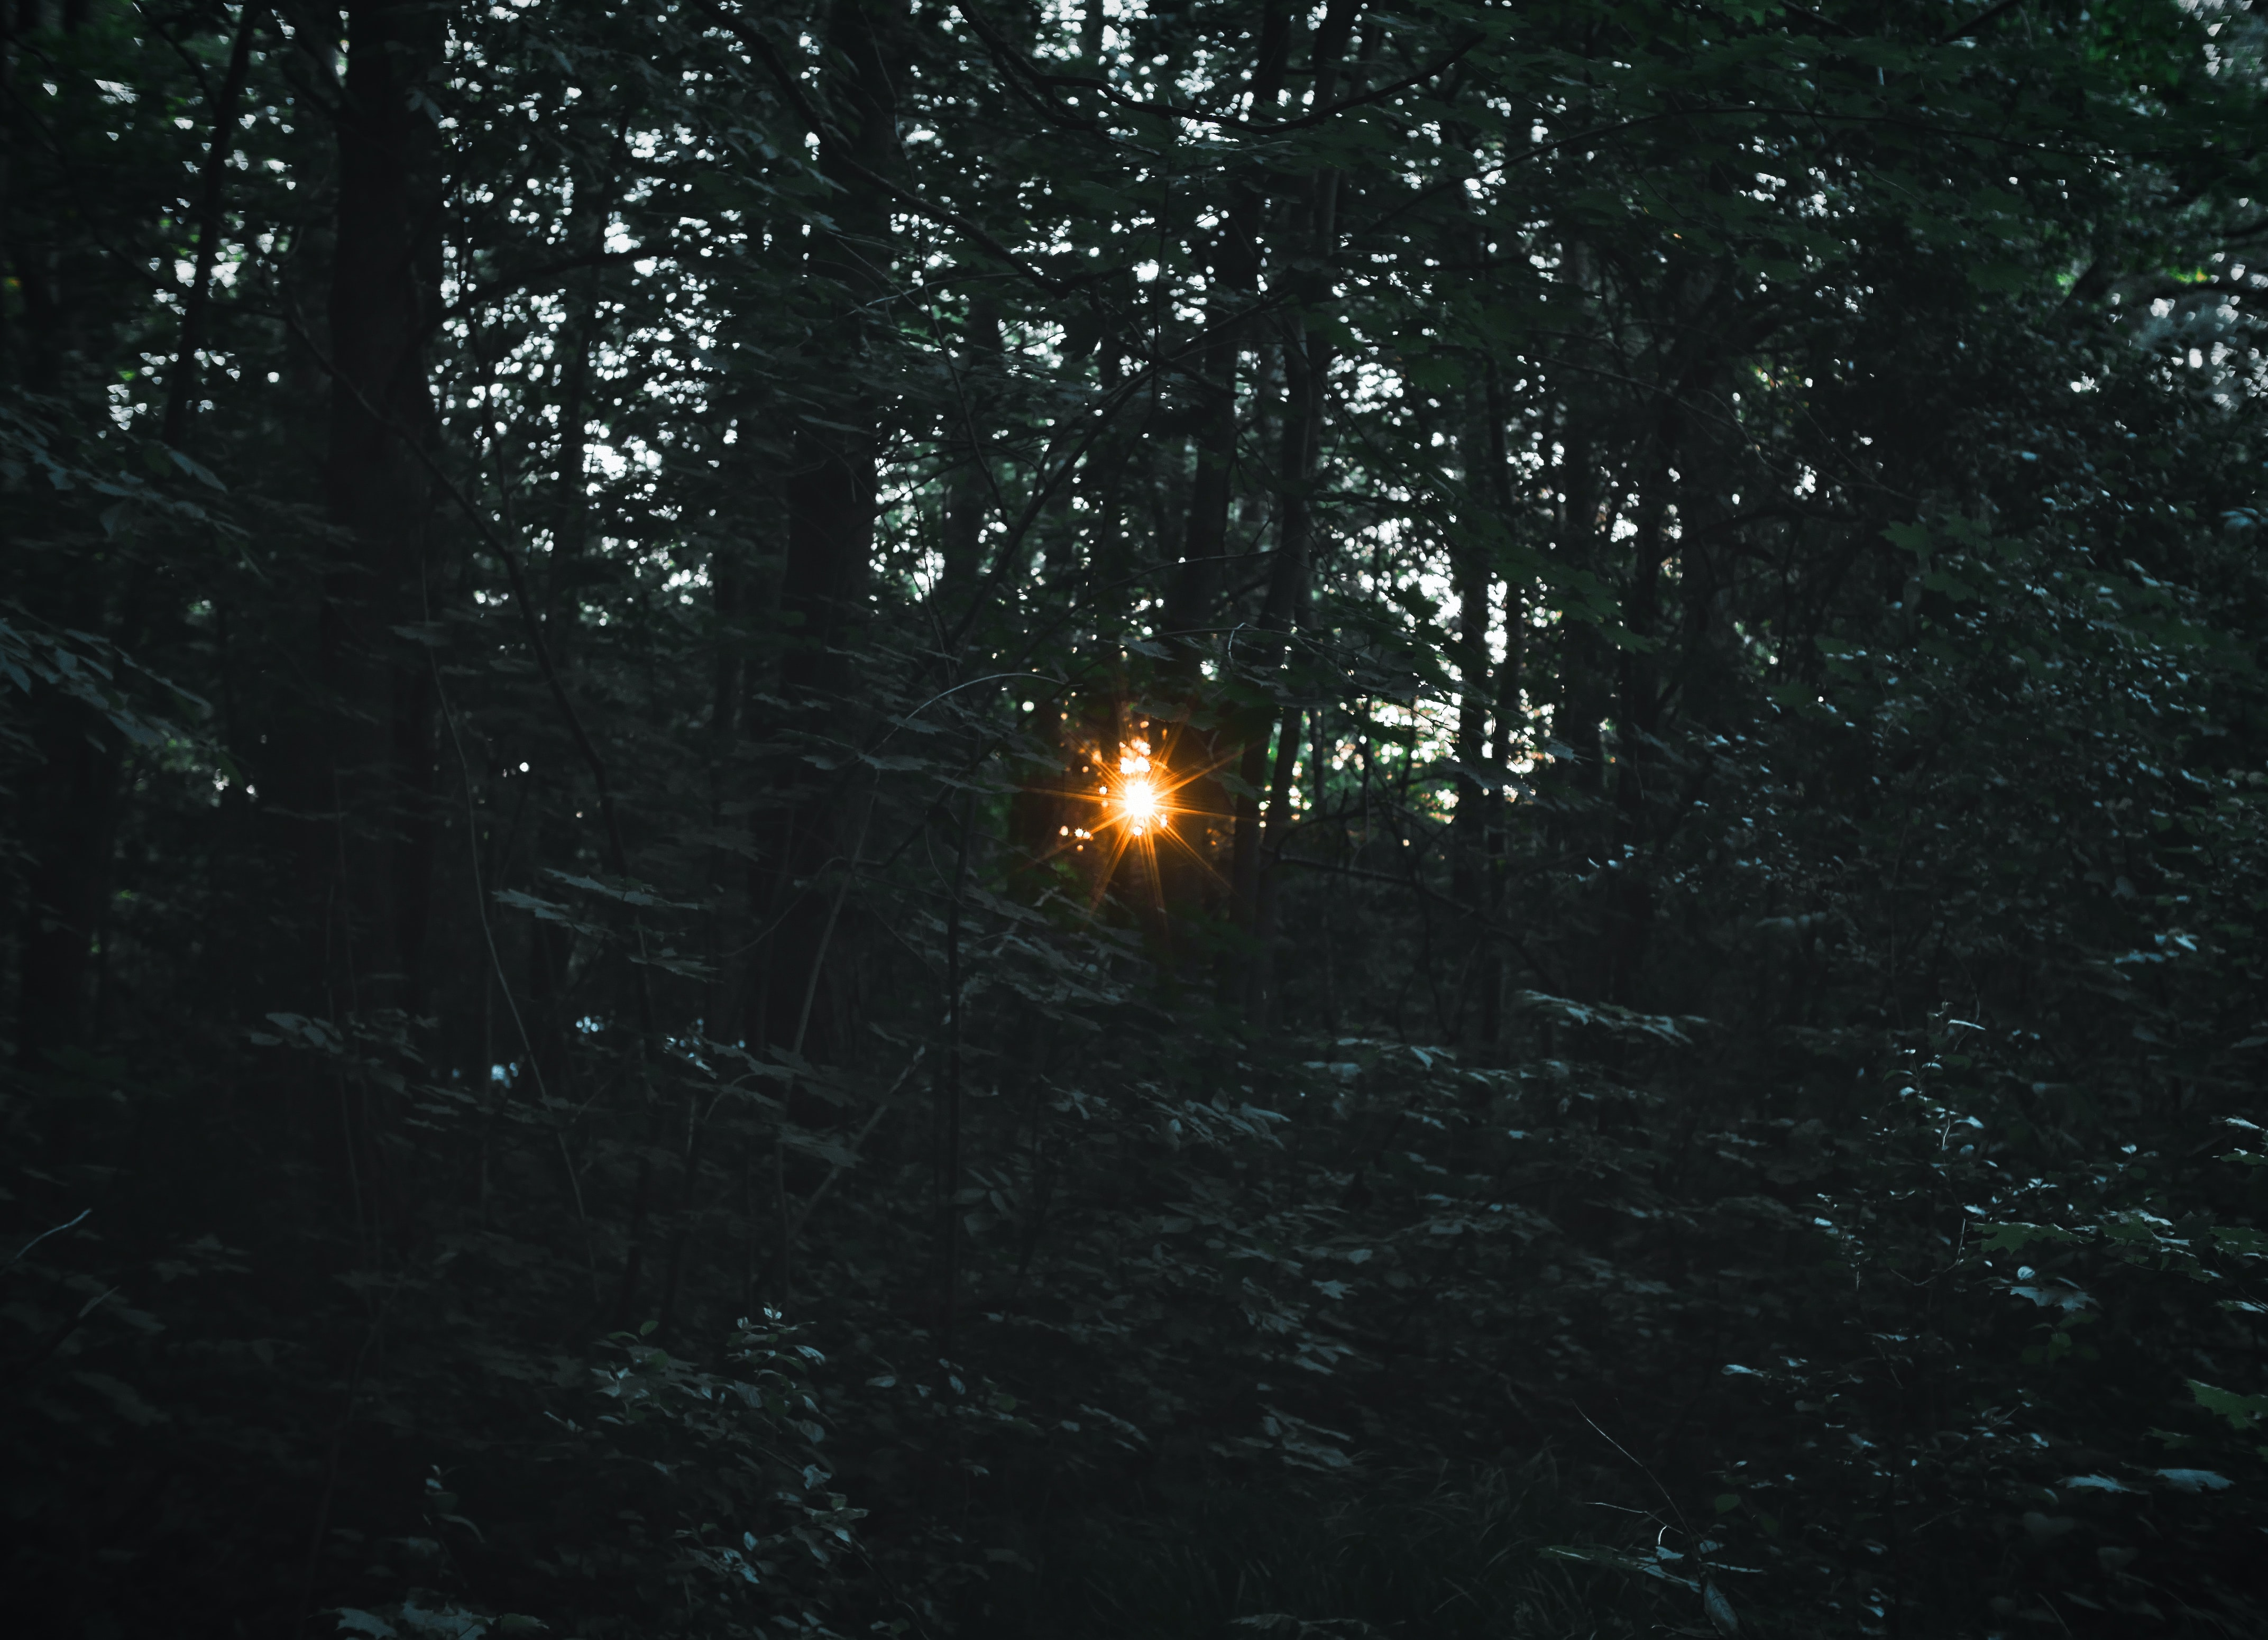 Setting sun shining through a dense forest thicket in Aurora